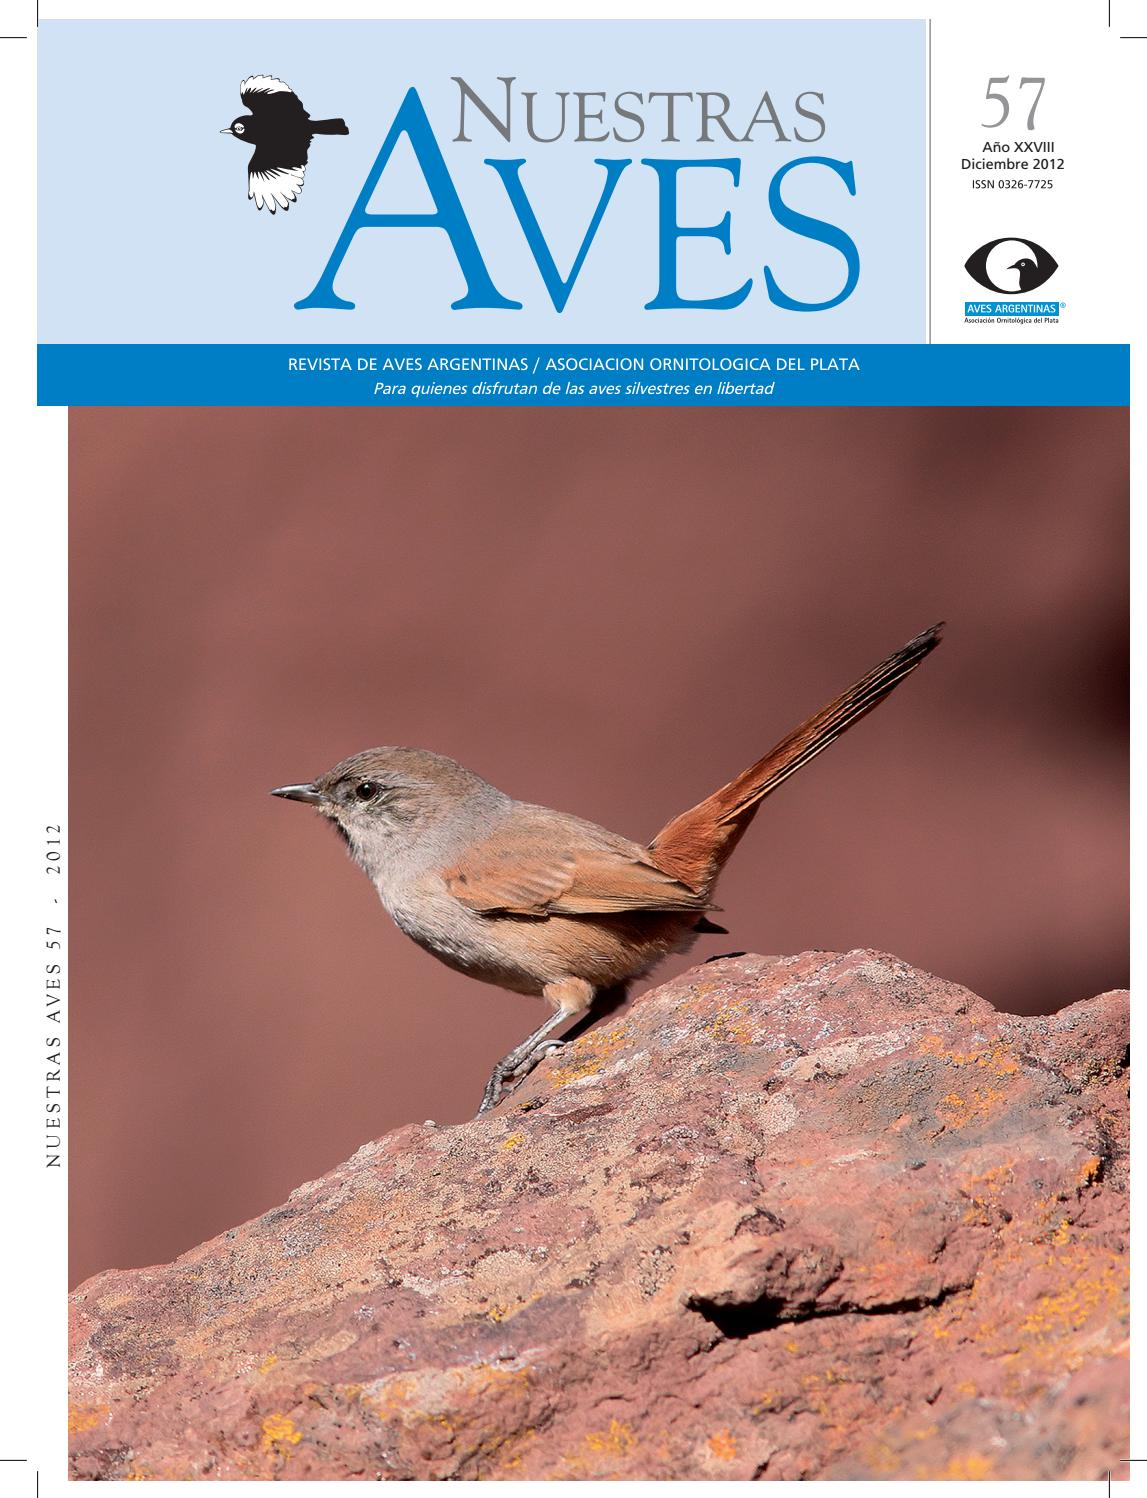 e9498440b6b5e Revista nuestras aves n56 by Aves Argentinas - issuu